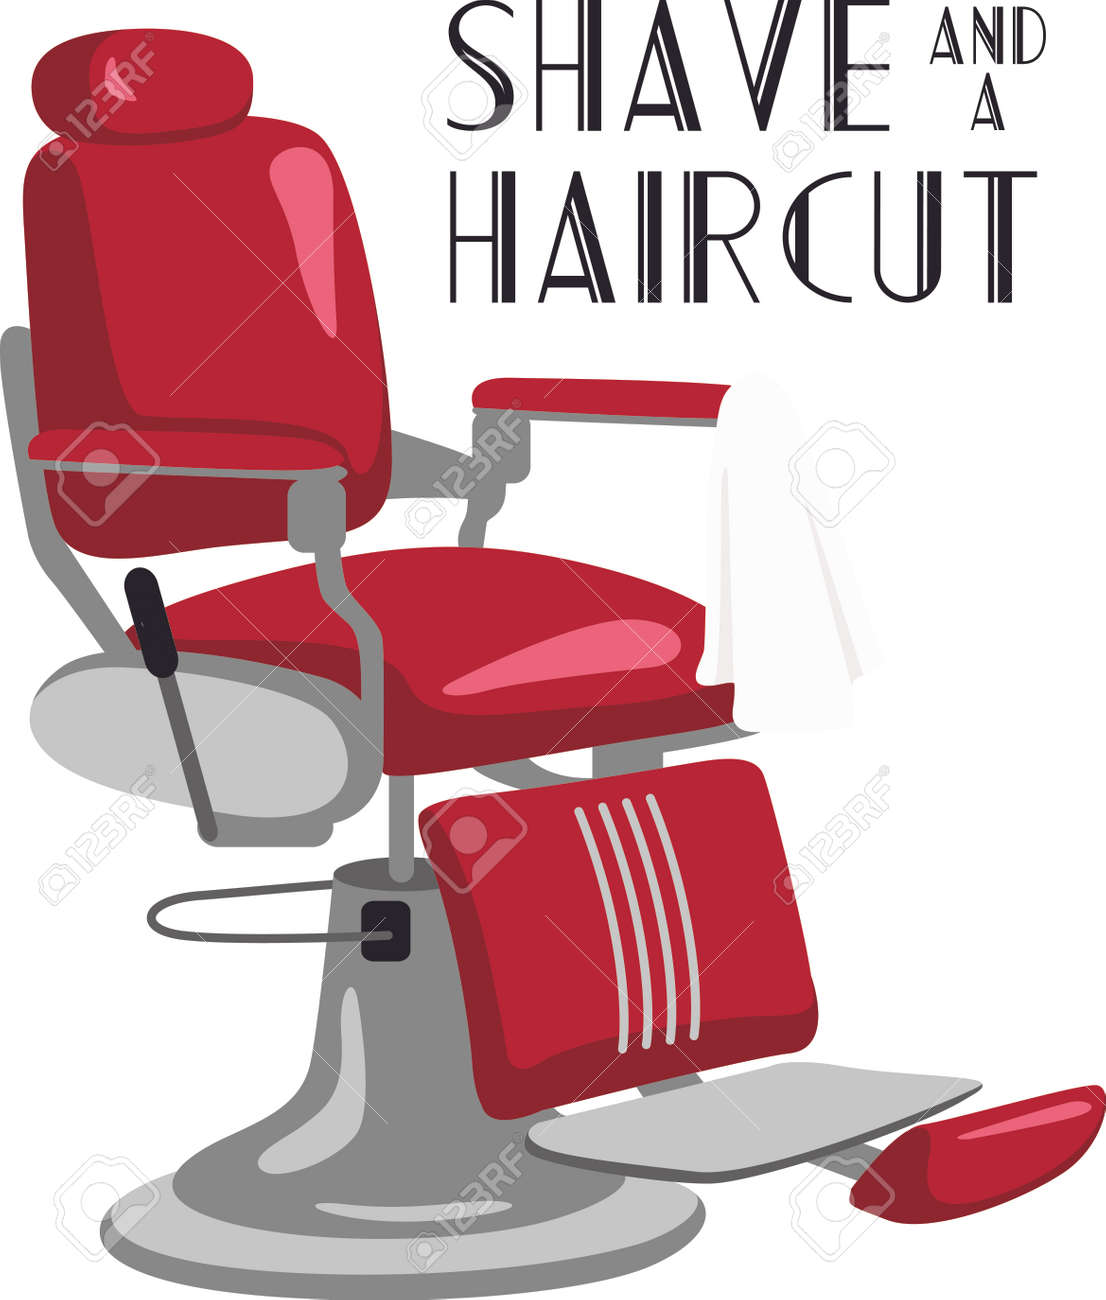 Barber chair vector -